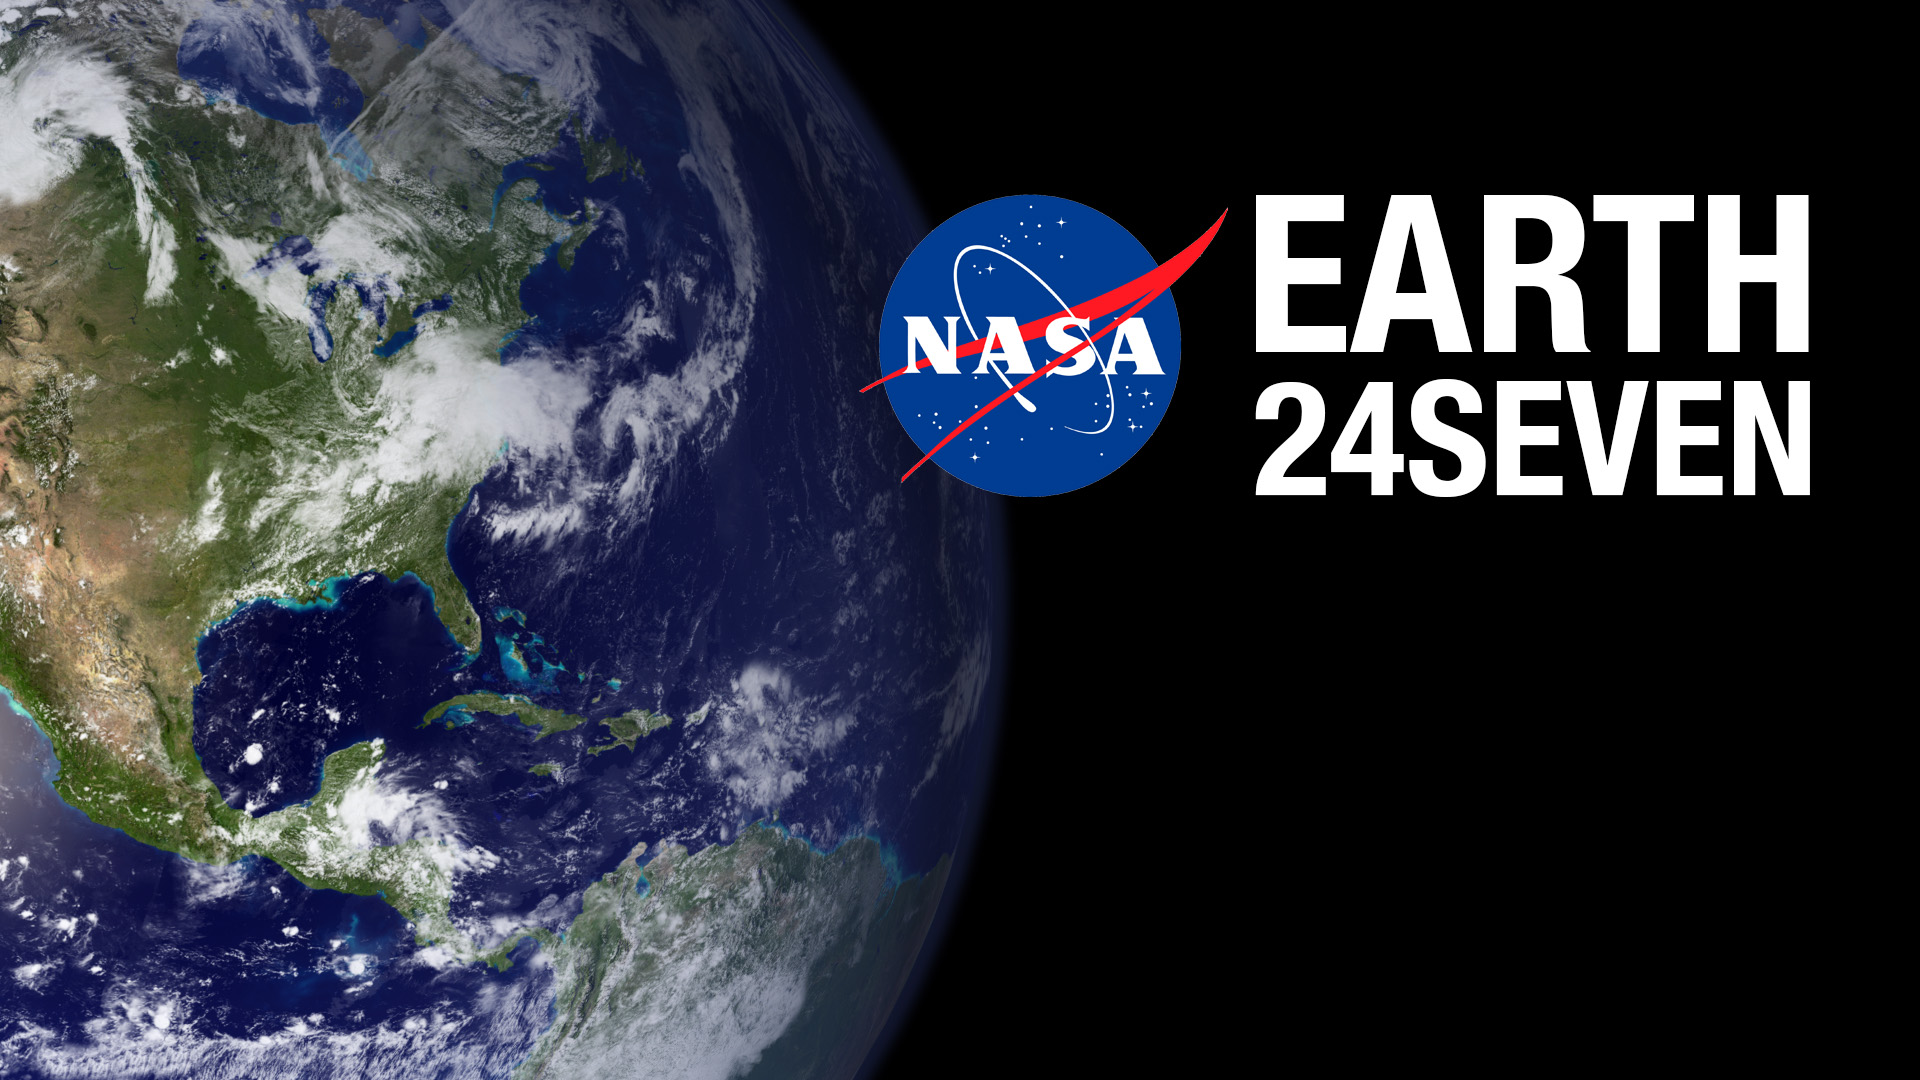 NASA Marks Earth Day with #24Seven Celebration